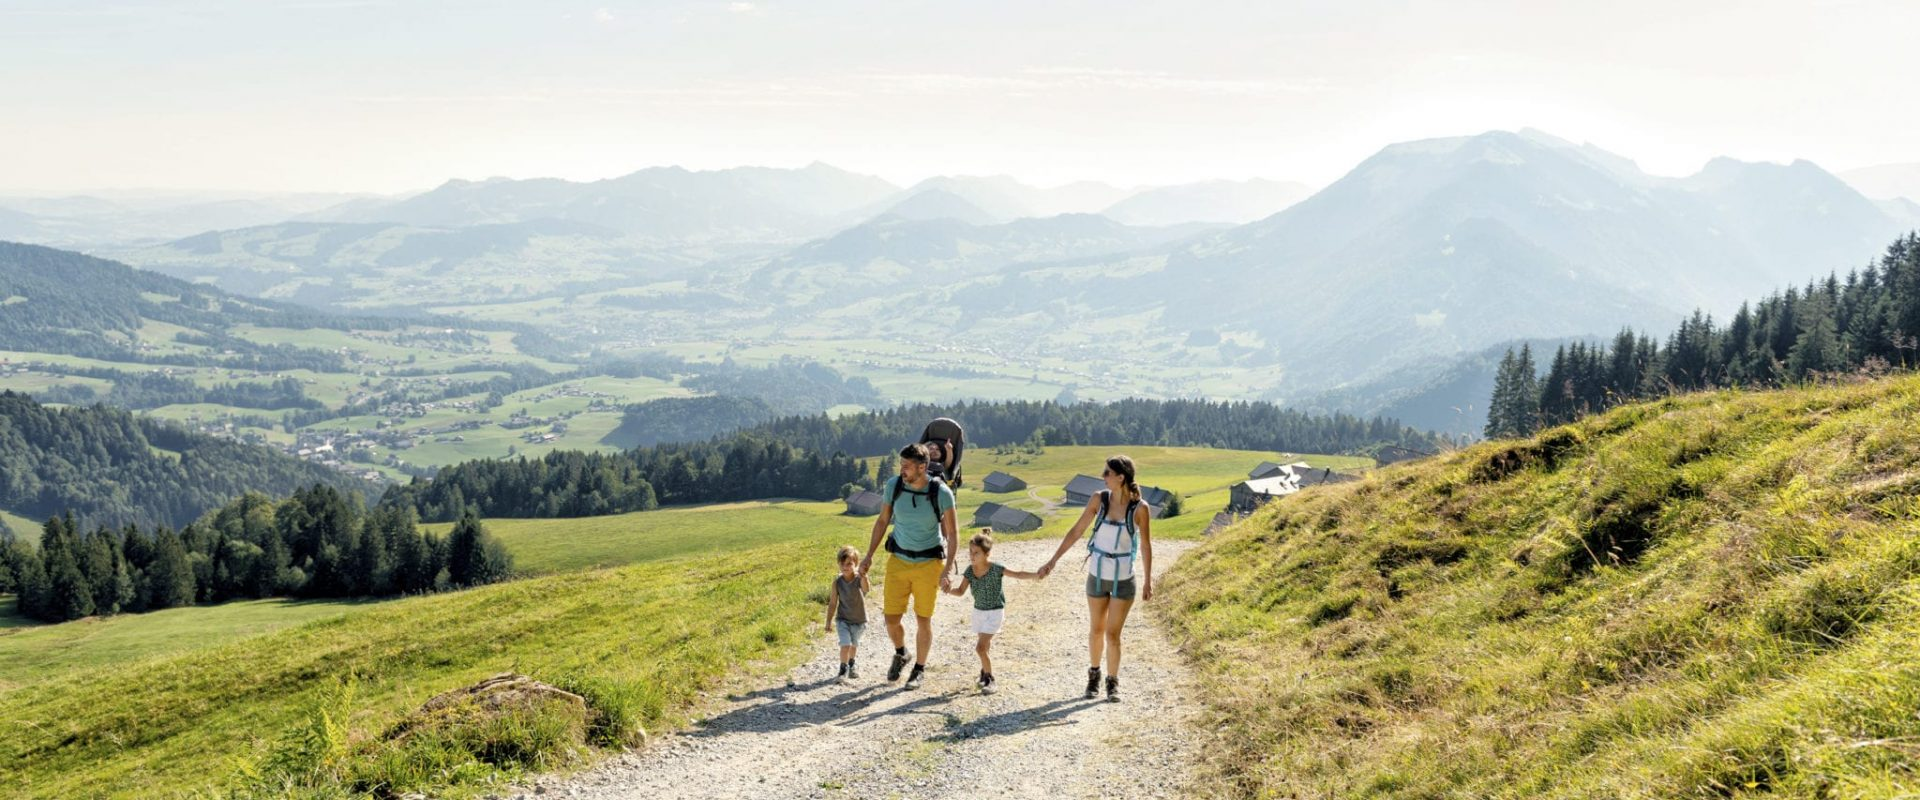 Family-oriented alpine hut hikes